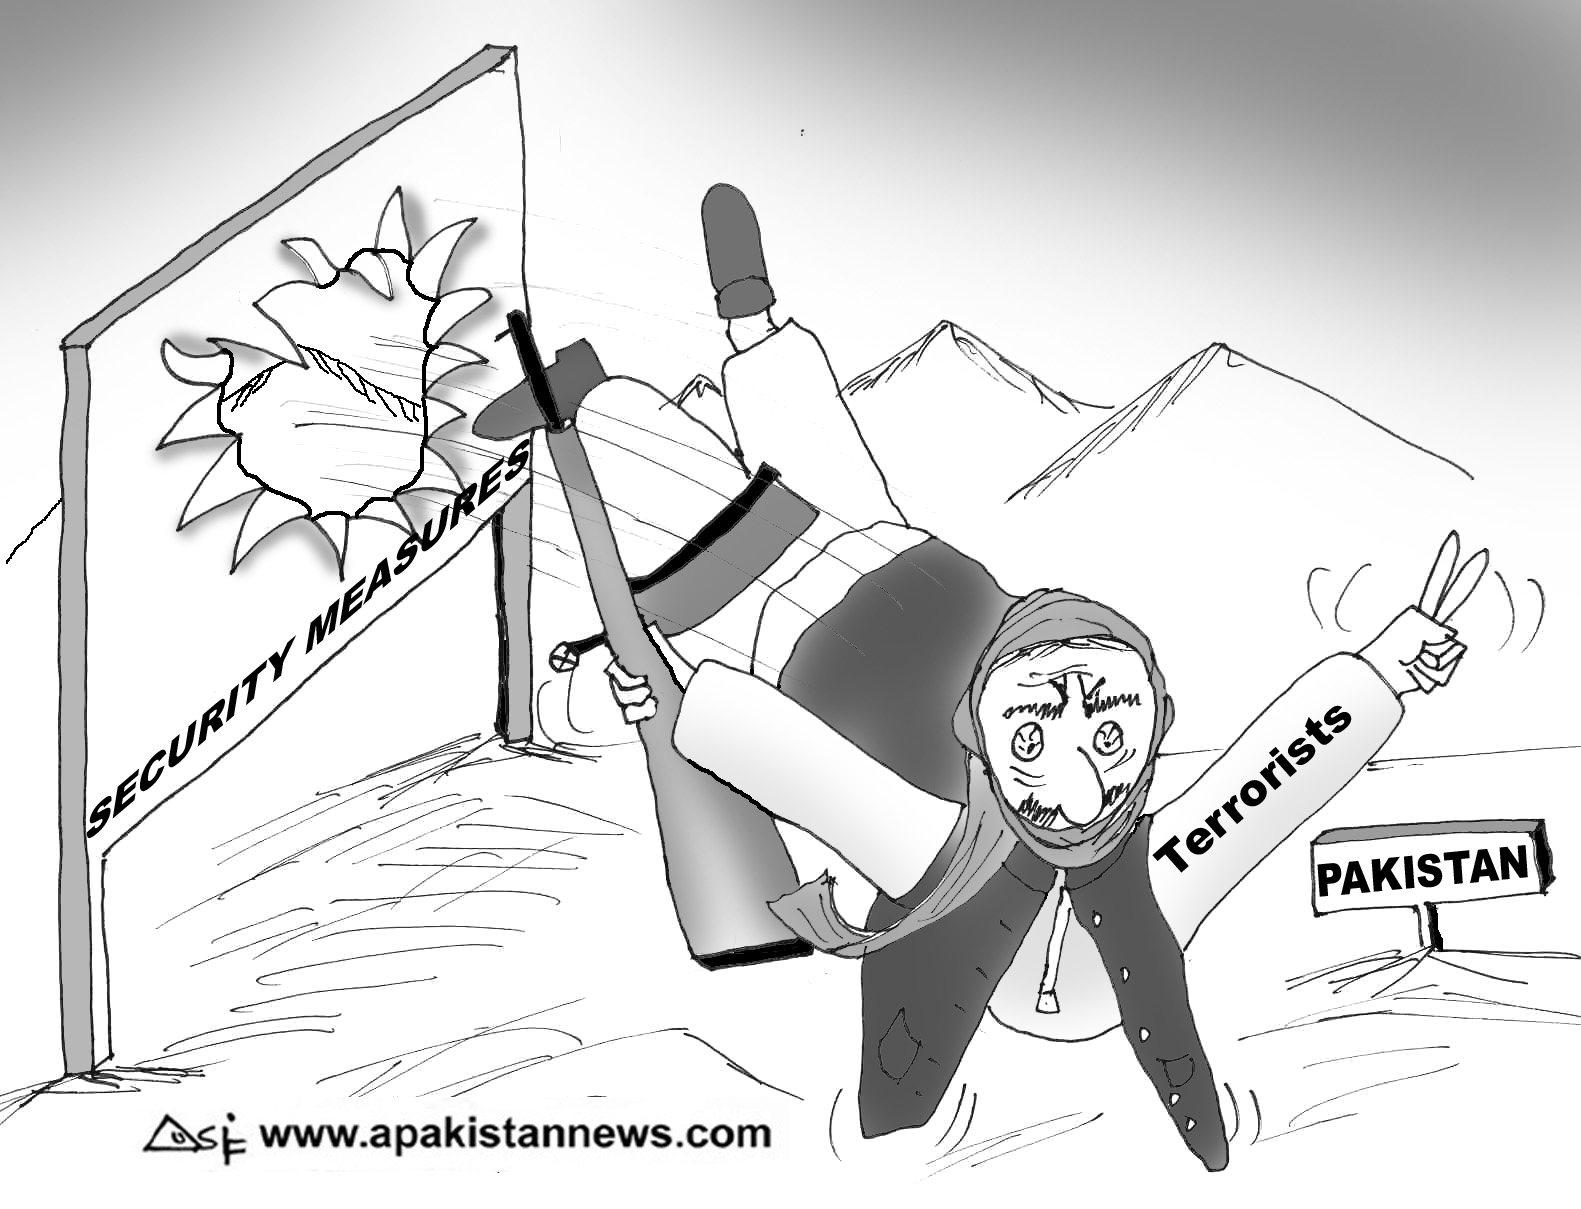 An editorial cartoon on Pakistan\'s security, via www.apakistannews.com